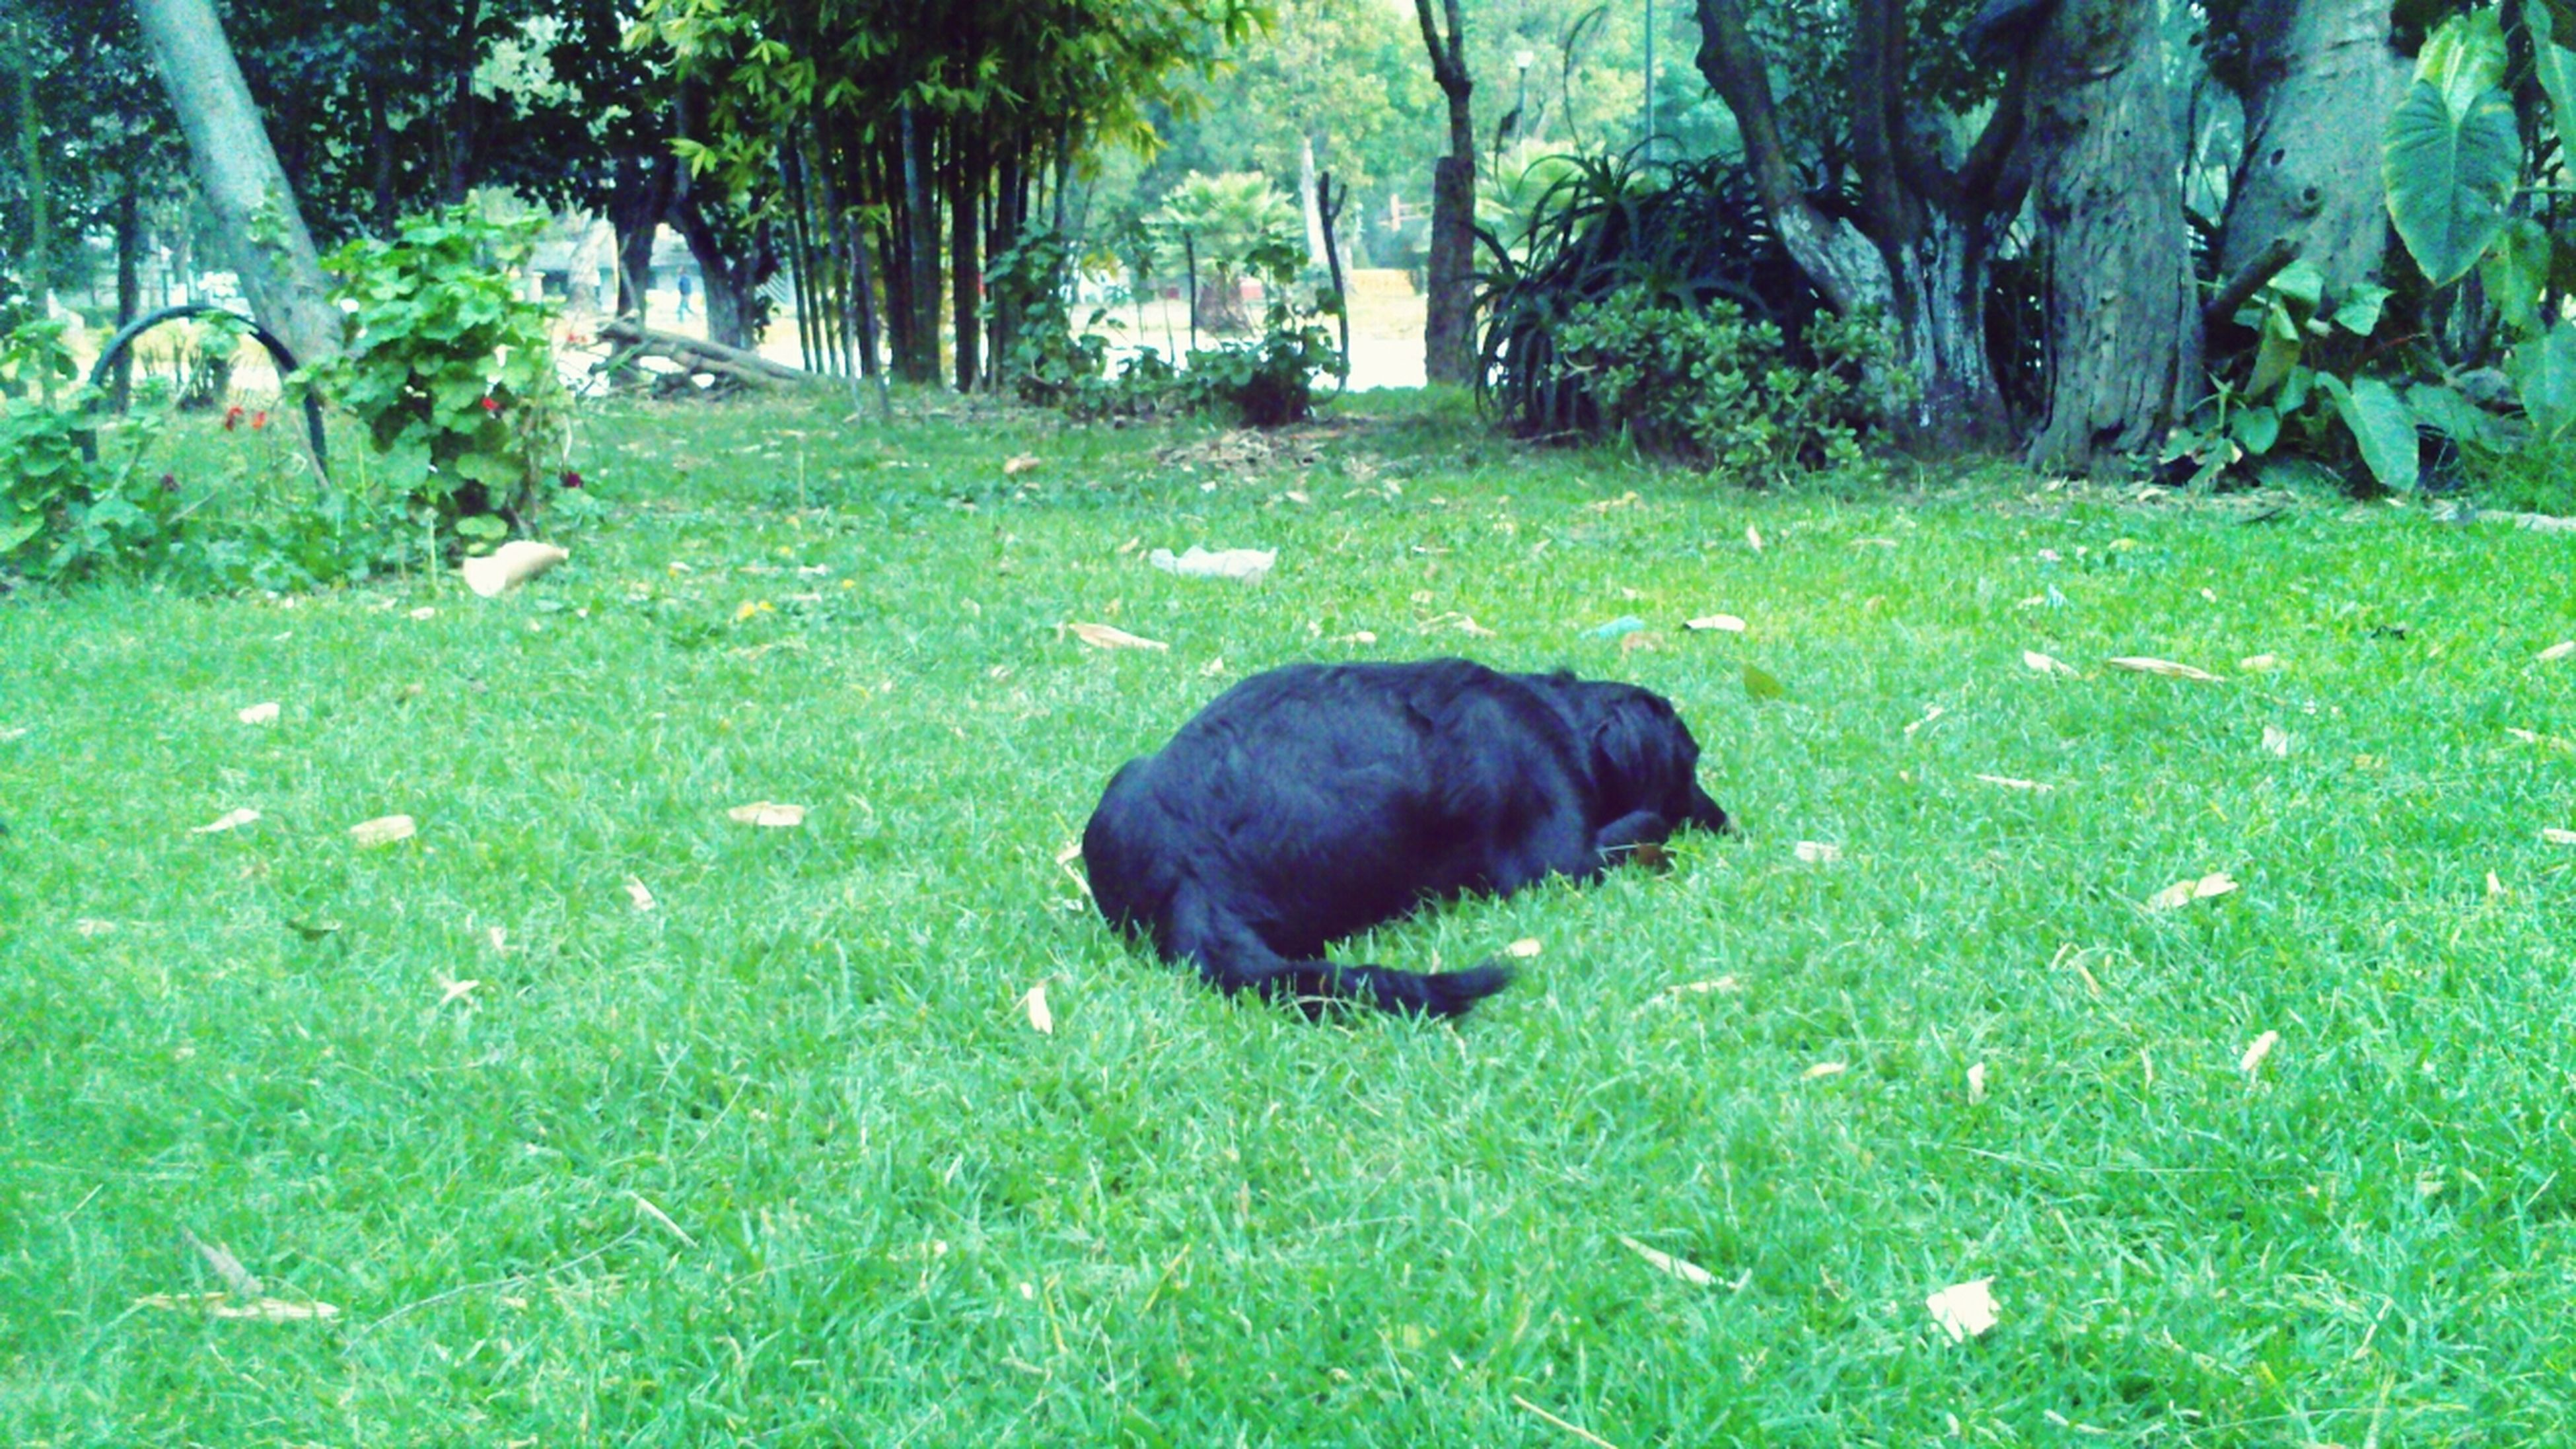 grass, animal themes, grassy, green color, field, one animal, lawn, domestic animals, tree, grassland, mammal, nature, growth, relaxation, park - man made space, wildlife, dog, day, no people, outdoors